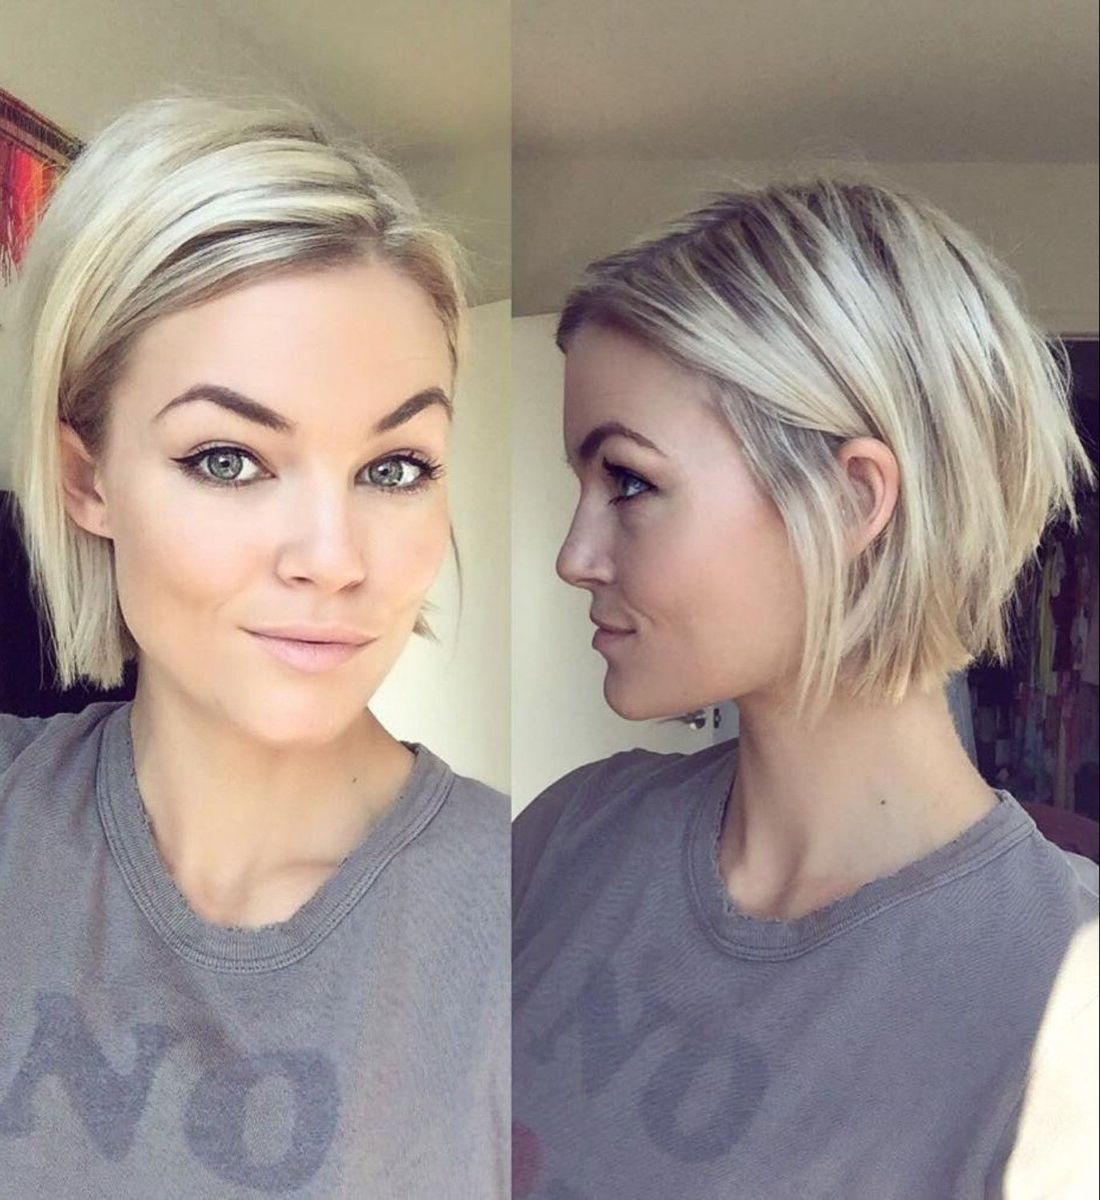 100 Mind Blowing Short Hairstyles For Fine Hair In 2020 Modern Short Hairstyles Short Straight Bob Hairstyles Thick Hair Styles